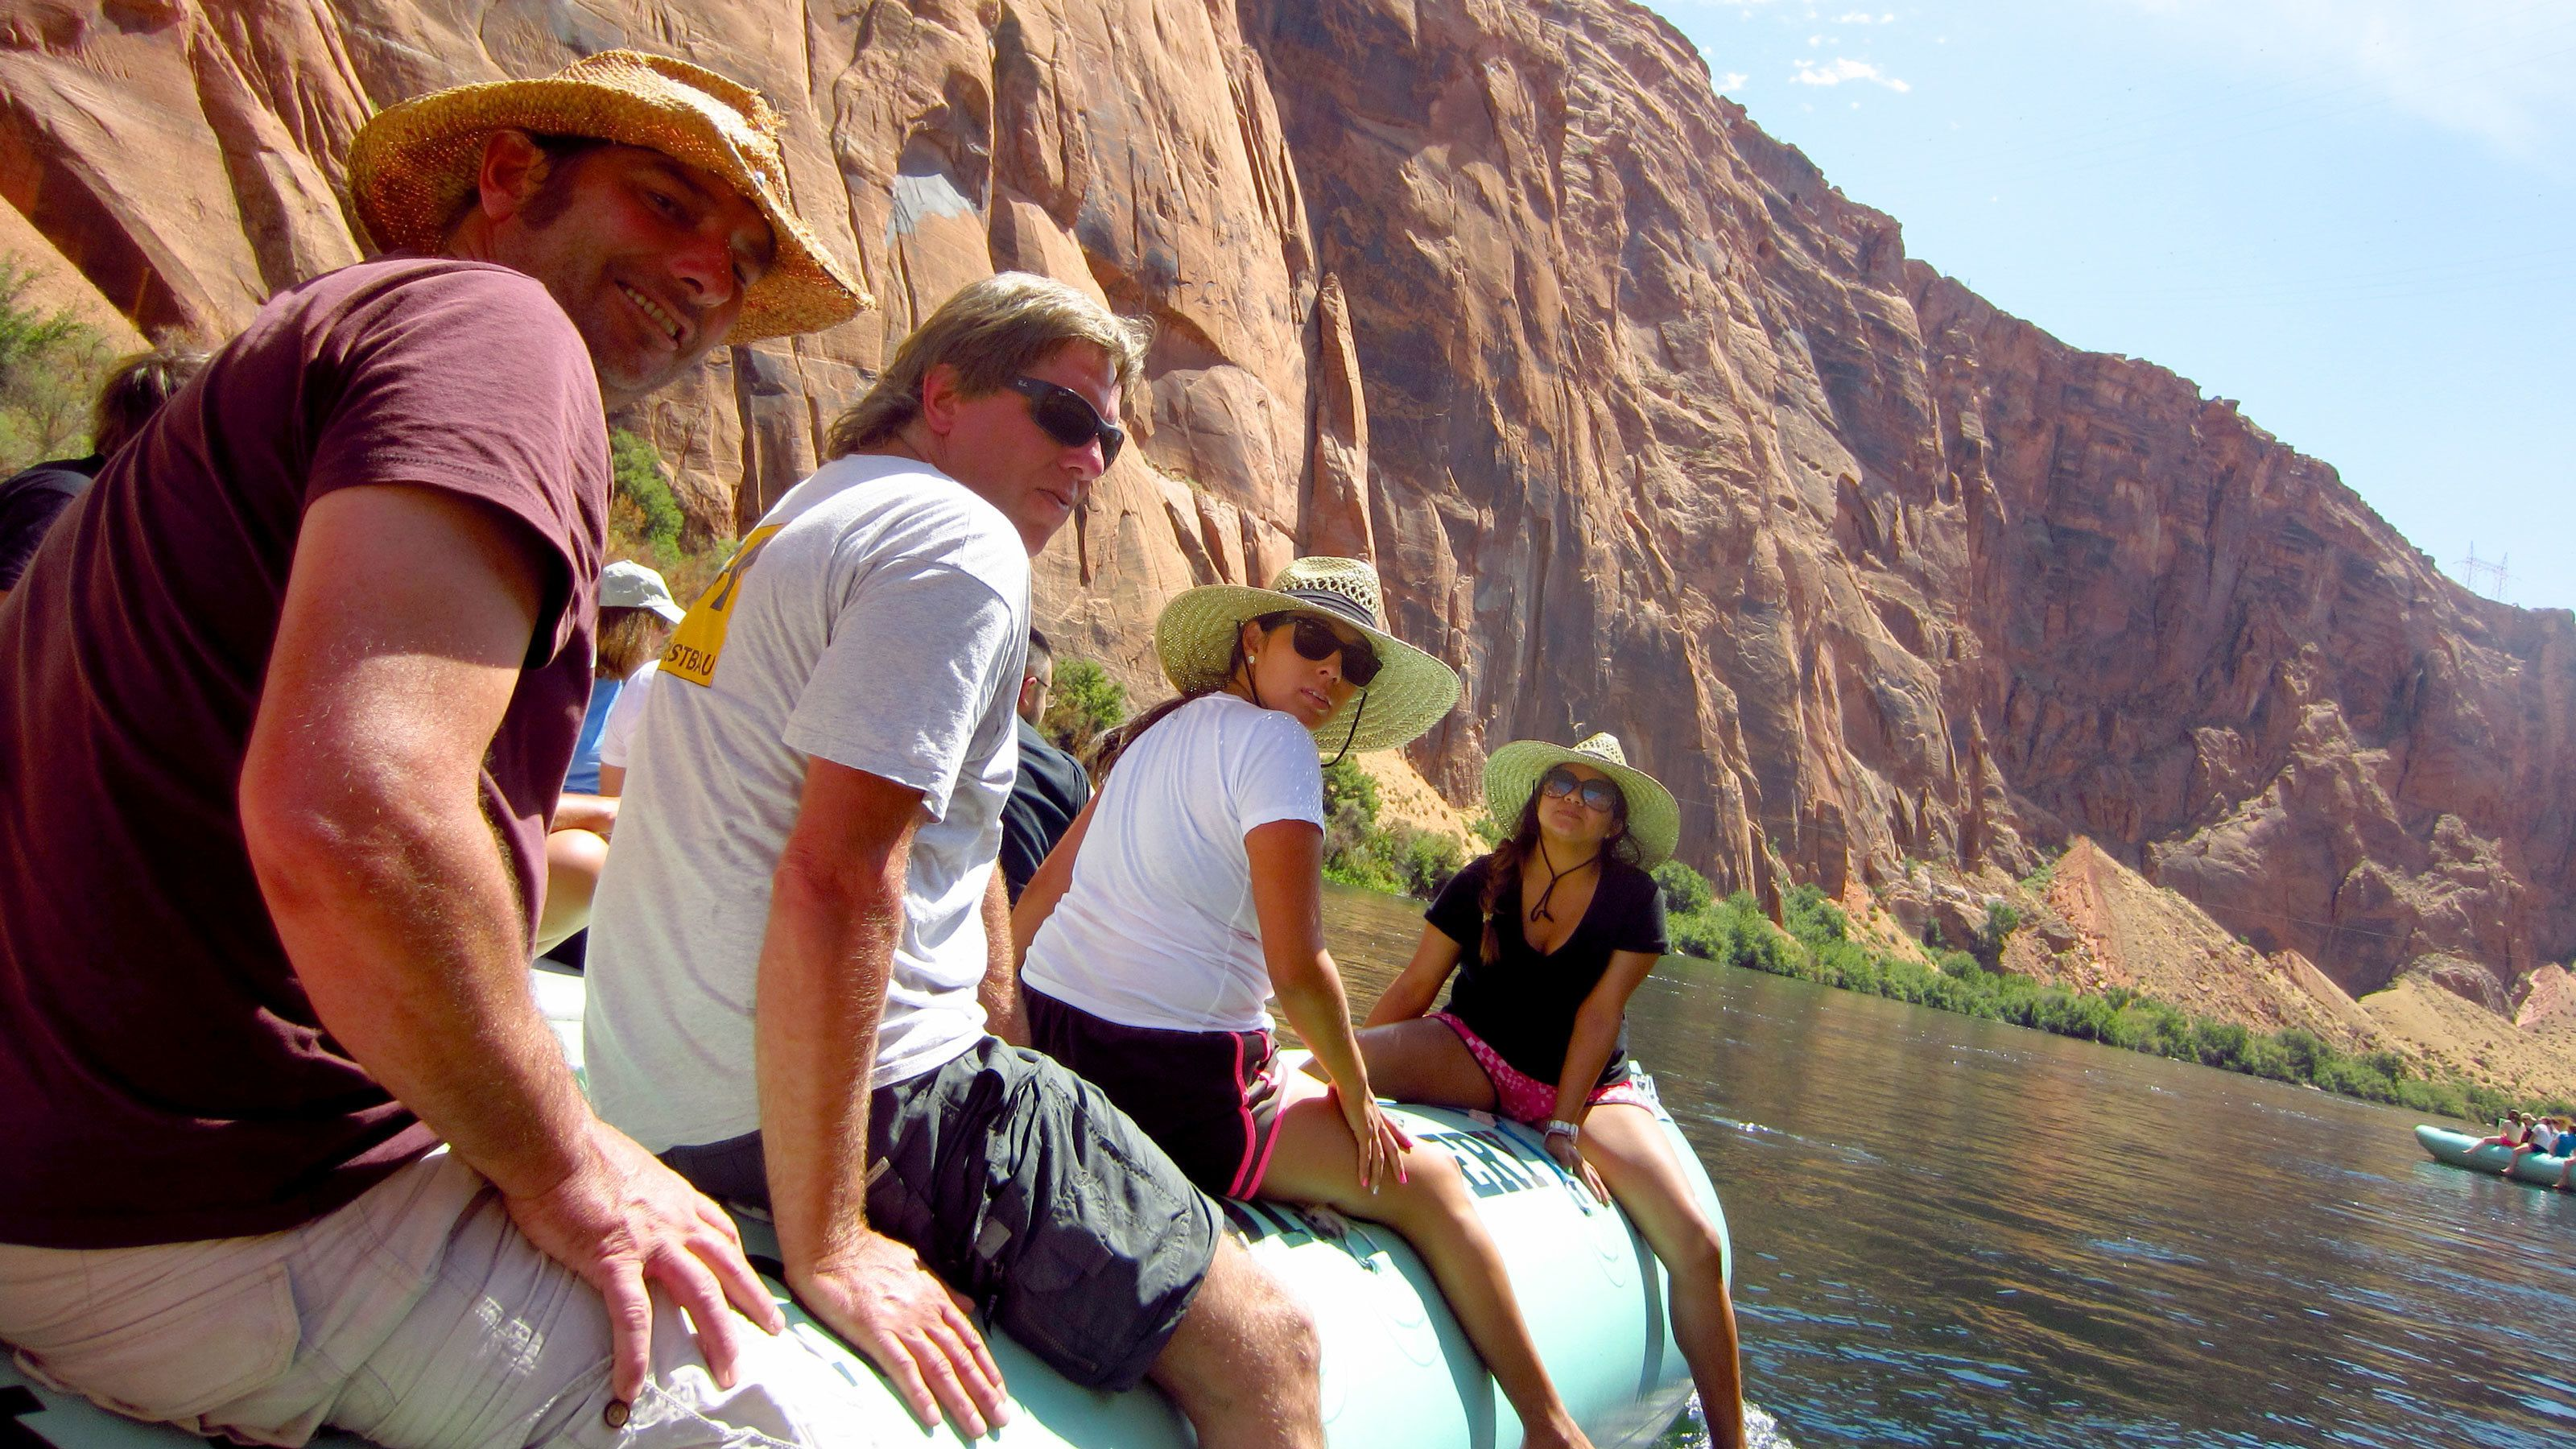 Close view of guests on the Colorado River Scenic Float Trip